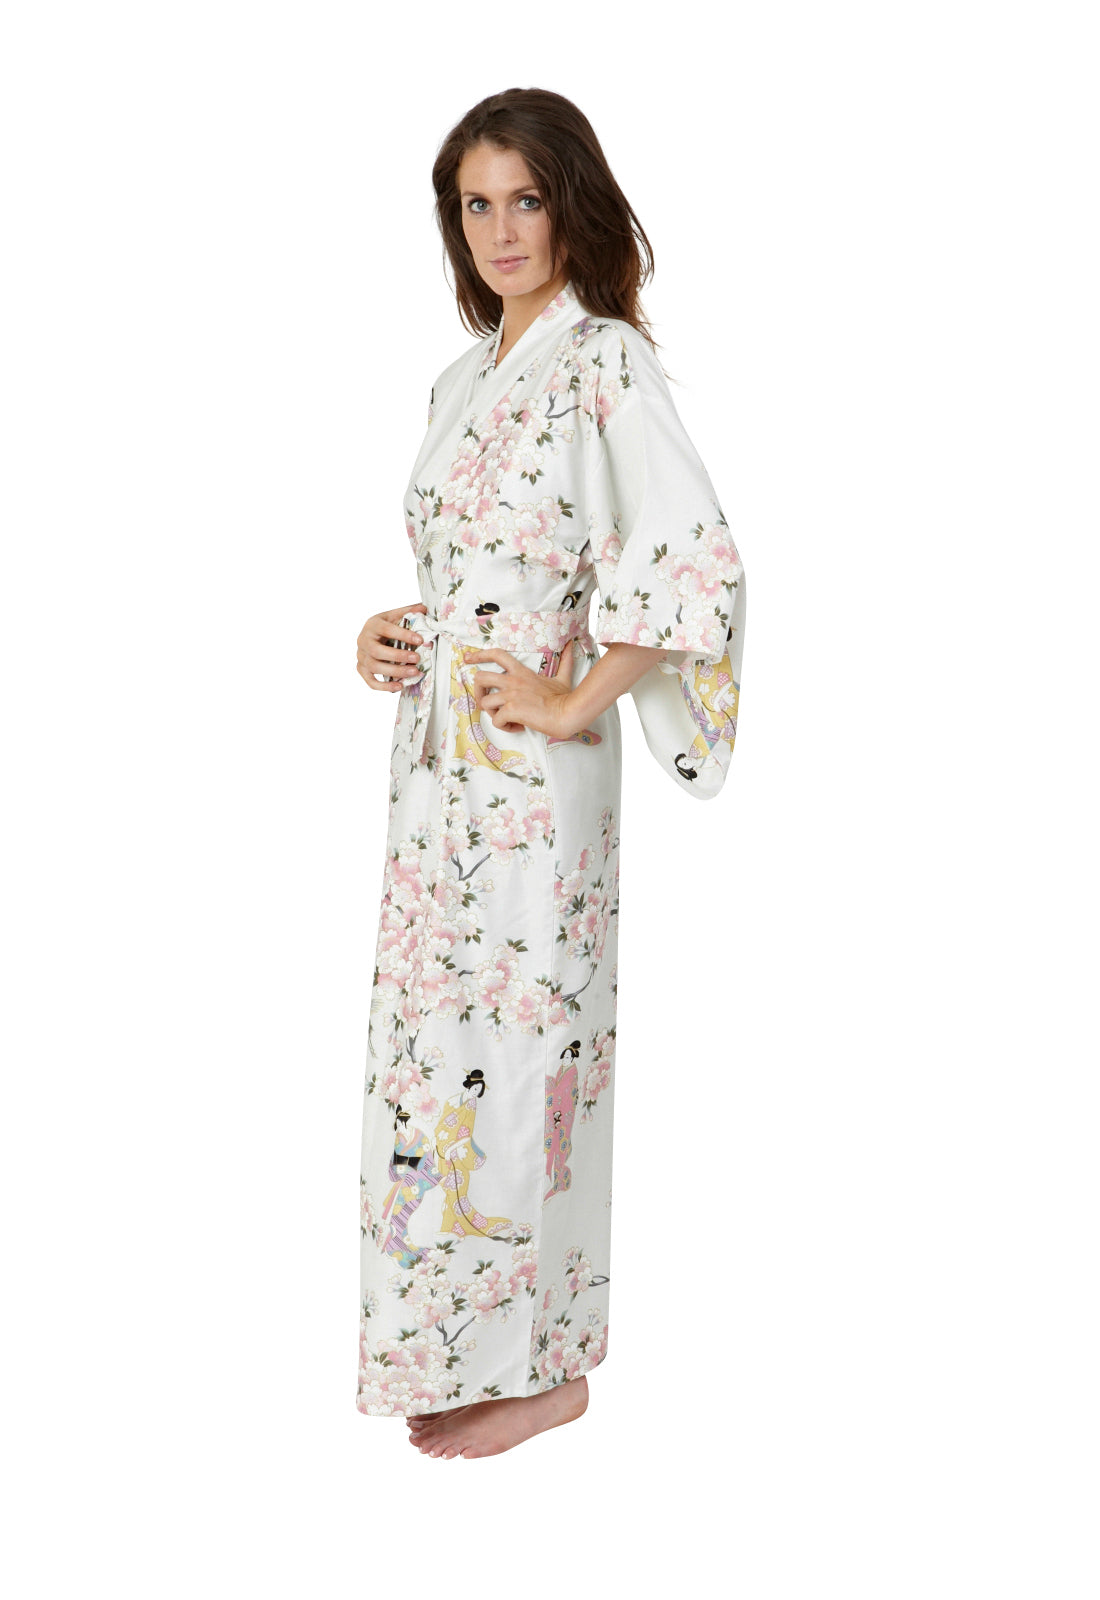 You searched for: cotton kimono! Etsy is the home to thousands of handmade, vintage, and one-of-a-kind products and gifts related to your search. No matter what you're looking for or where you are in the world, our global marketplace of sellers can help you find unique and affordable options. Let's get started!